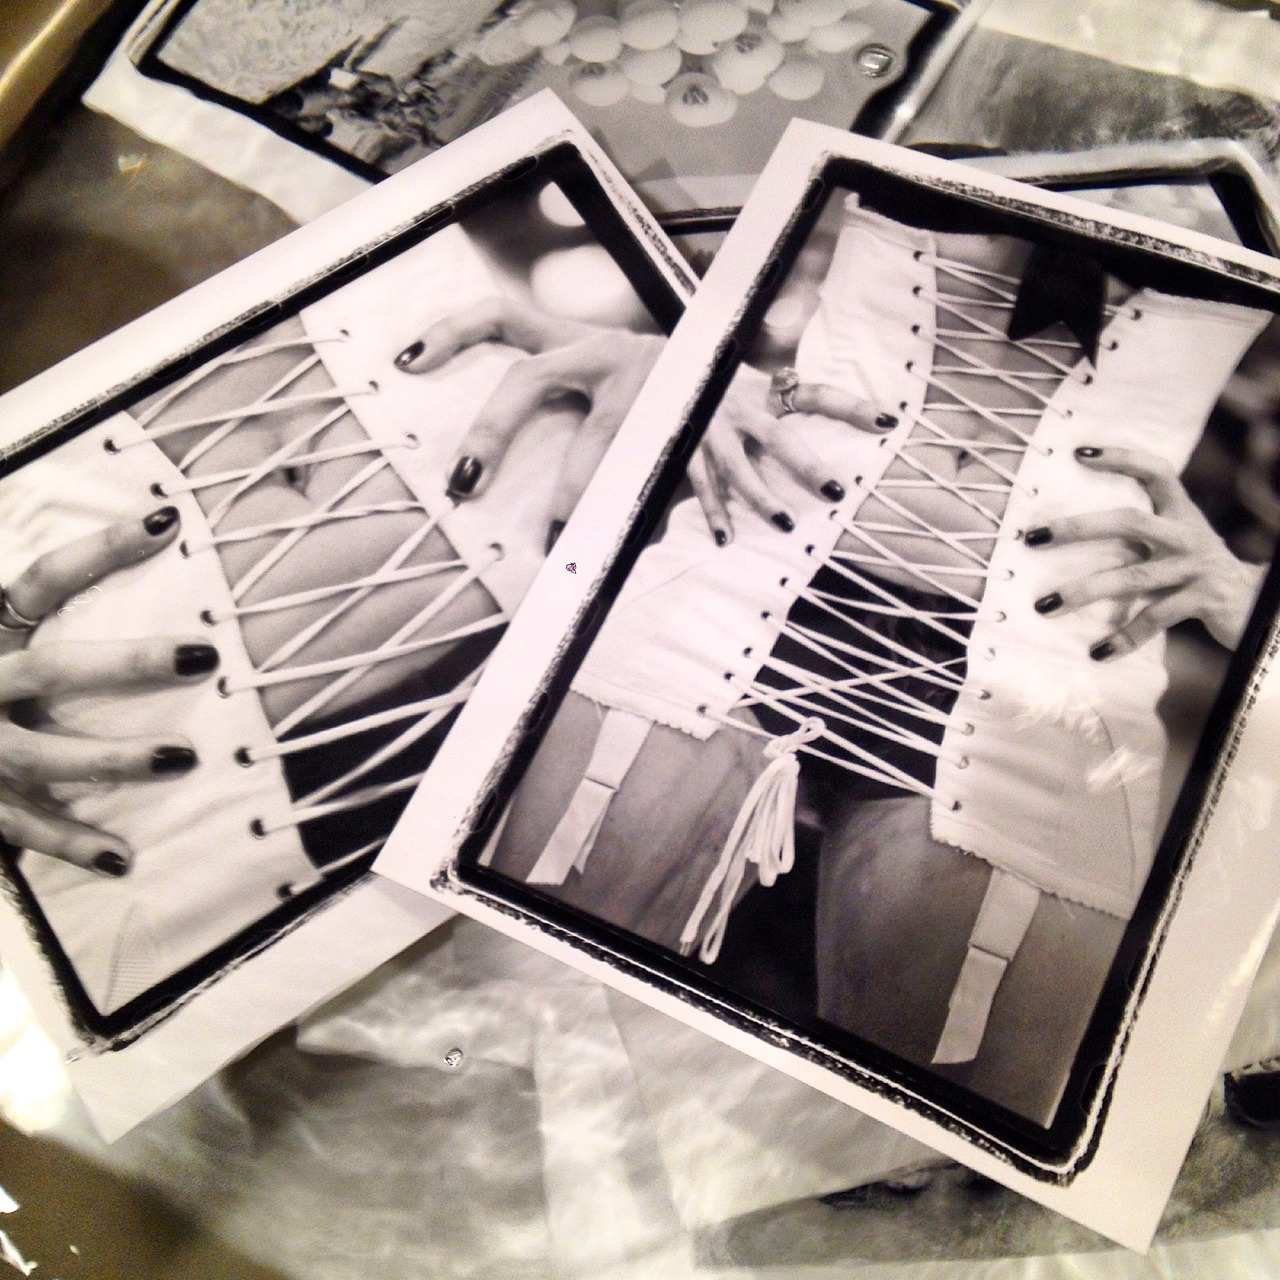 """Back in the darkroom after years and I rediscovered a few good negatives that were in the closet for 10 years. On the right in newly named """"Juicy"""". International Center of Photography. Big prints coming soon. Limited editions. SPiN Galleries. Victor Spinelli Archive"""